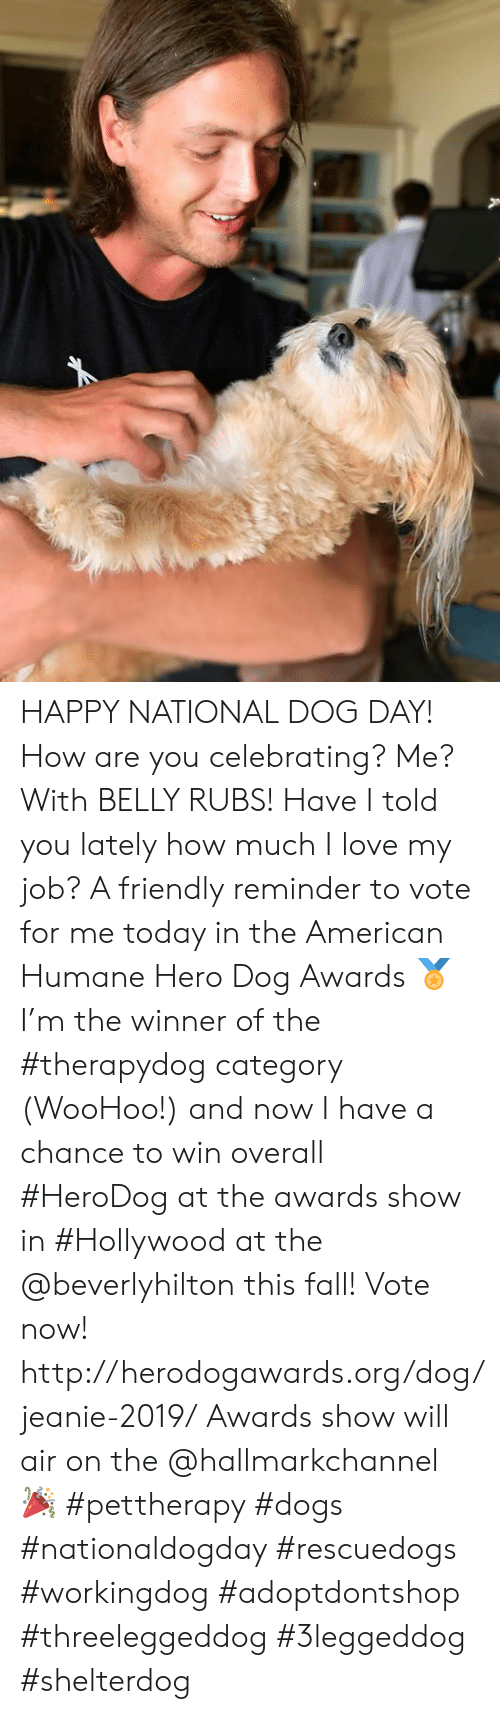 Hallmarkchannel: HAPPY NATIONAL DOG DAY!  How are you celebrating? Me? With BELLY RUBS!   Have I told you lately how much I love my job? A friendly reminder to vote for me today in the American Humane Hero Dog Awards 🏅 I'm the winner of the #therapydog category (WooHoo!) and now I have a chance to win overall #HeroDog at the awards show in #Hollywood at the @beverlyhilton this fall! Vote now! http://herodogawards.org/dog/jeanie-2019/ Awards show will air on the @hallmarkchannel 🎉  #pettherapy #dogs #nationaldogday  #rescuedogs #workingdog #adoptdontshop    #threeleggeddog #3leggeddog #shelterdog